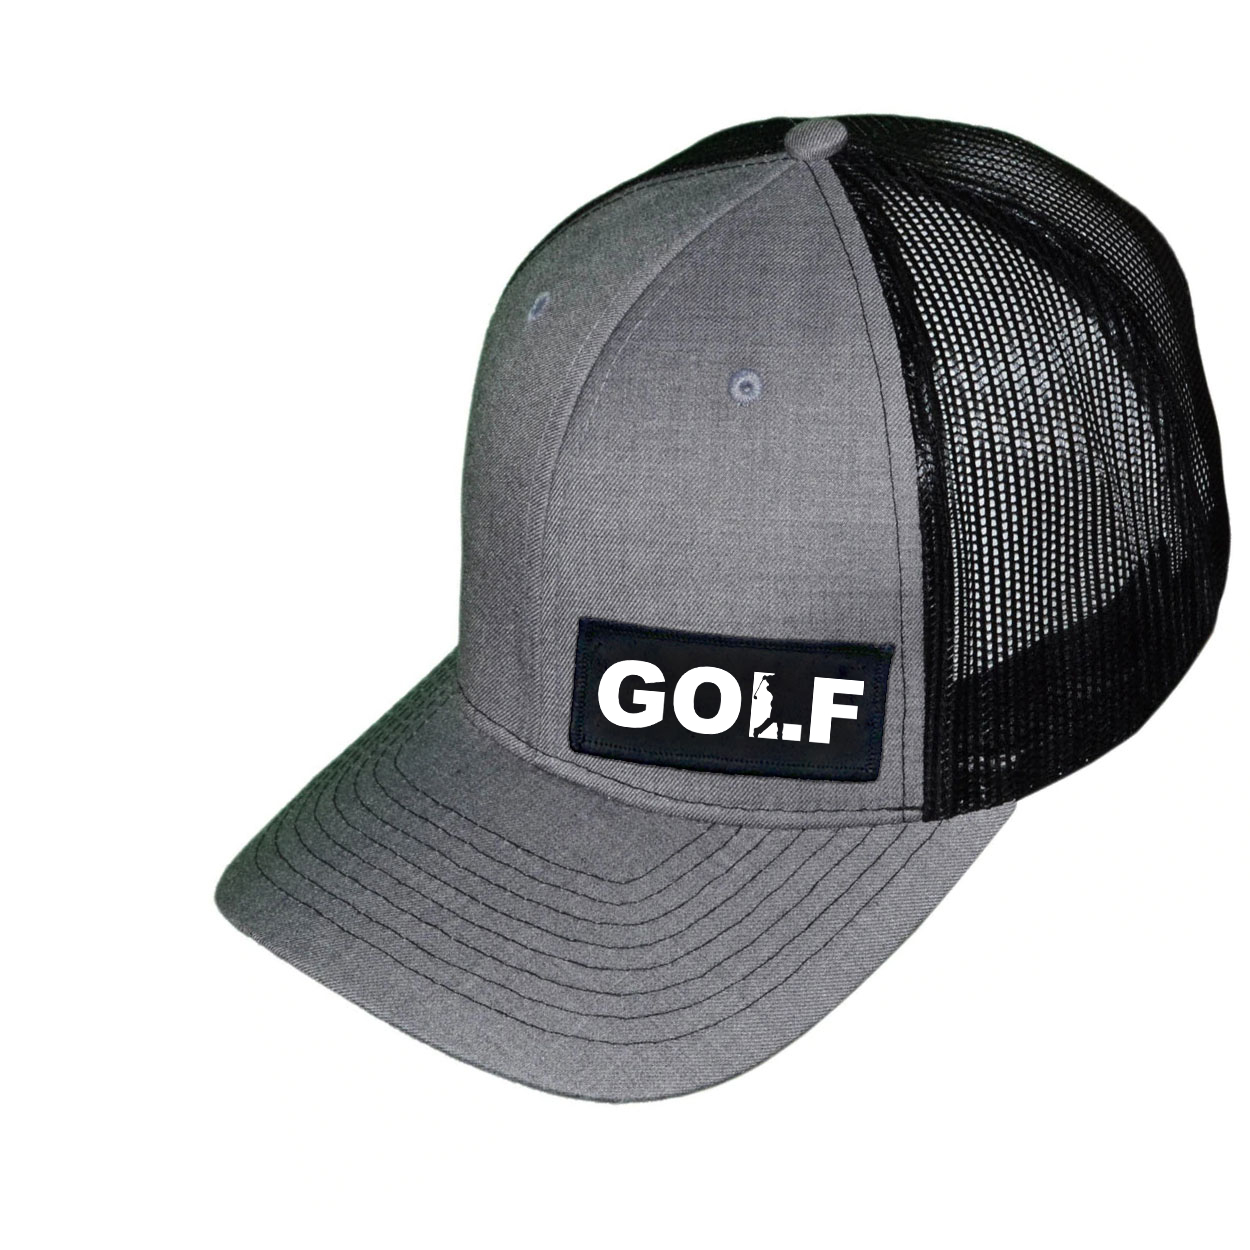 Golf Swing Logo Night Out Woven Patch Snapback Trucker Hat Heather Gray/Black (White Logo)